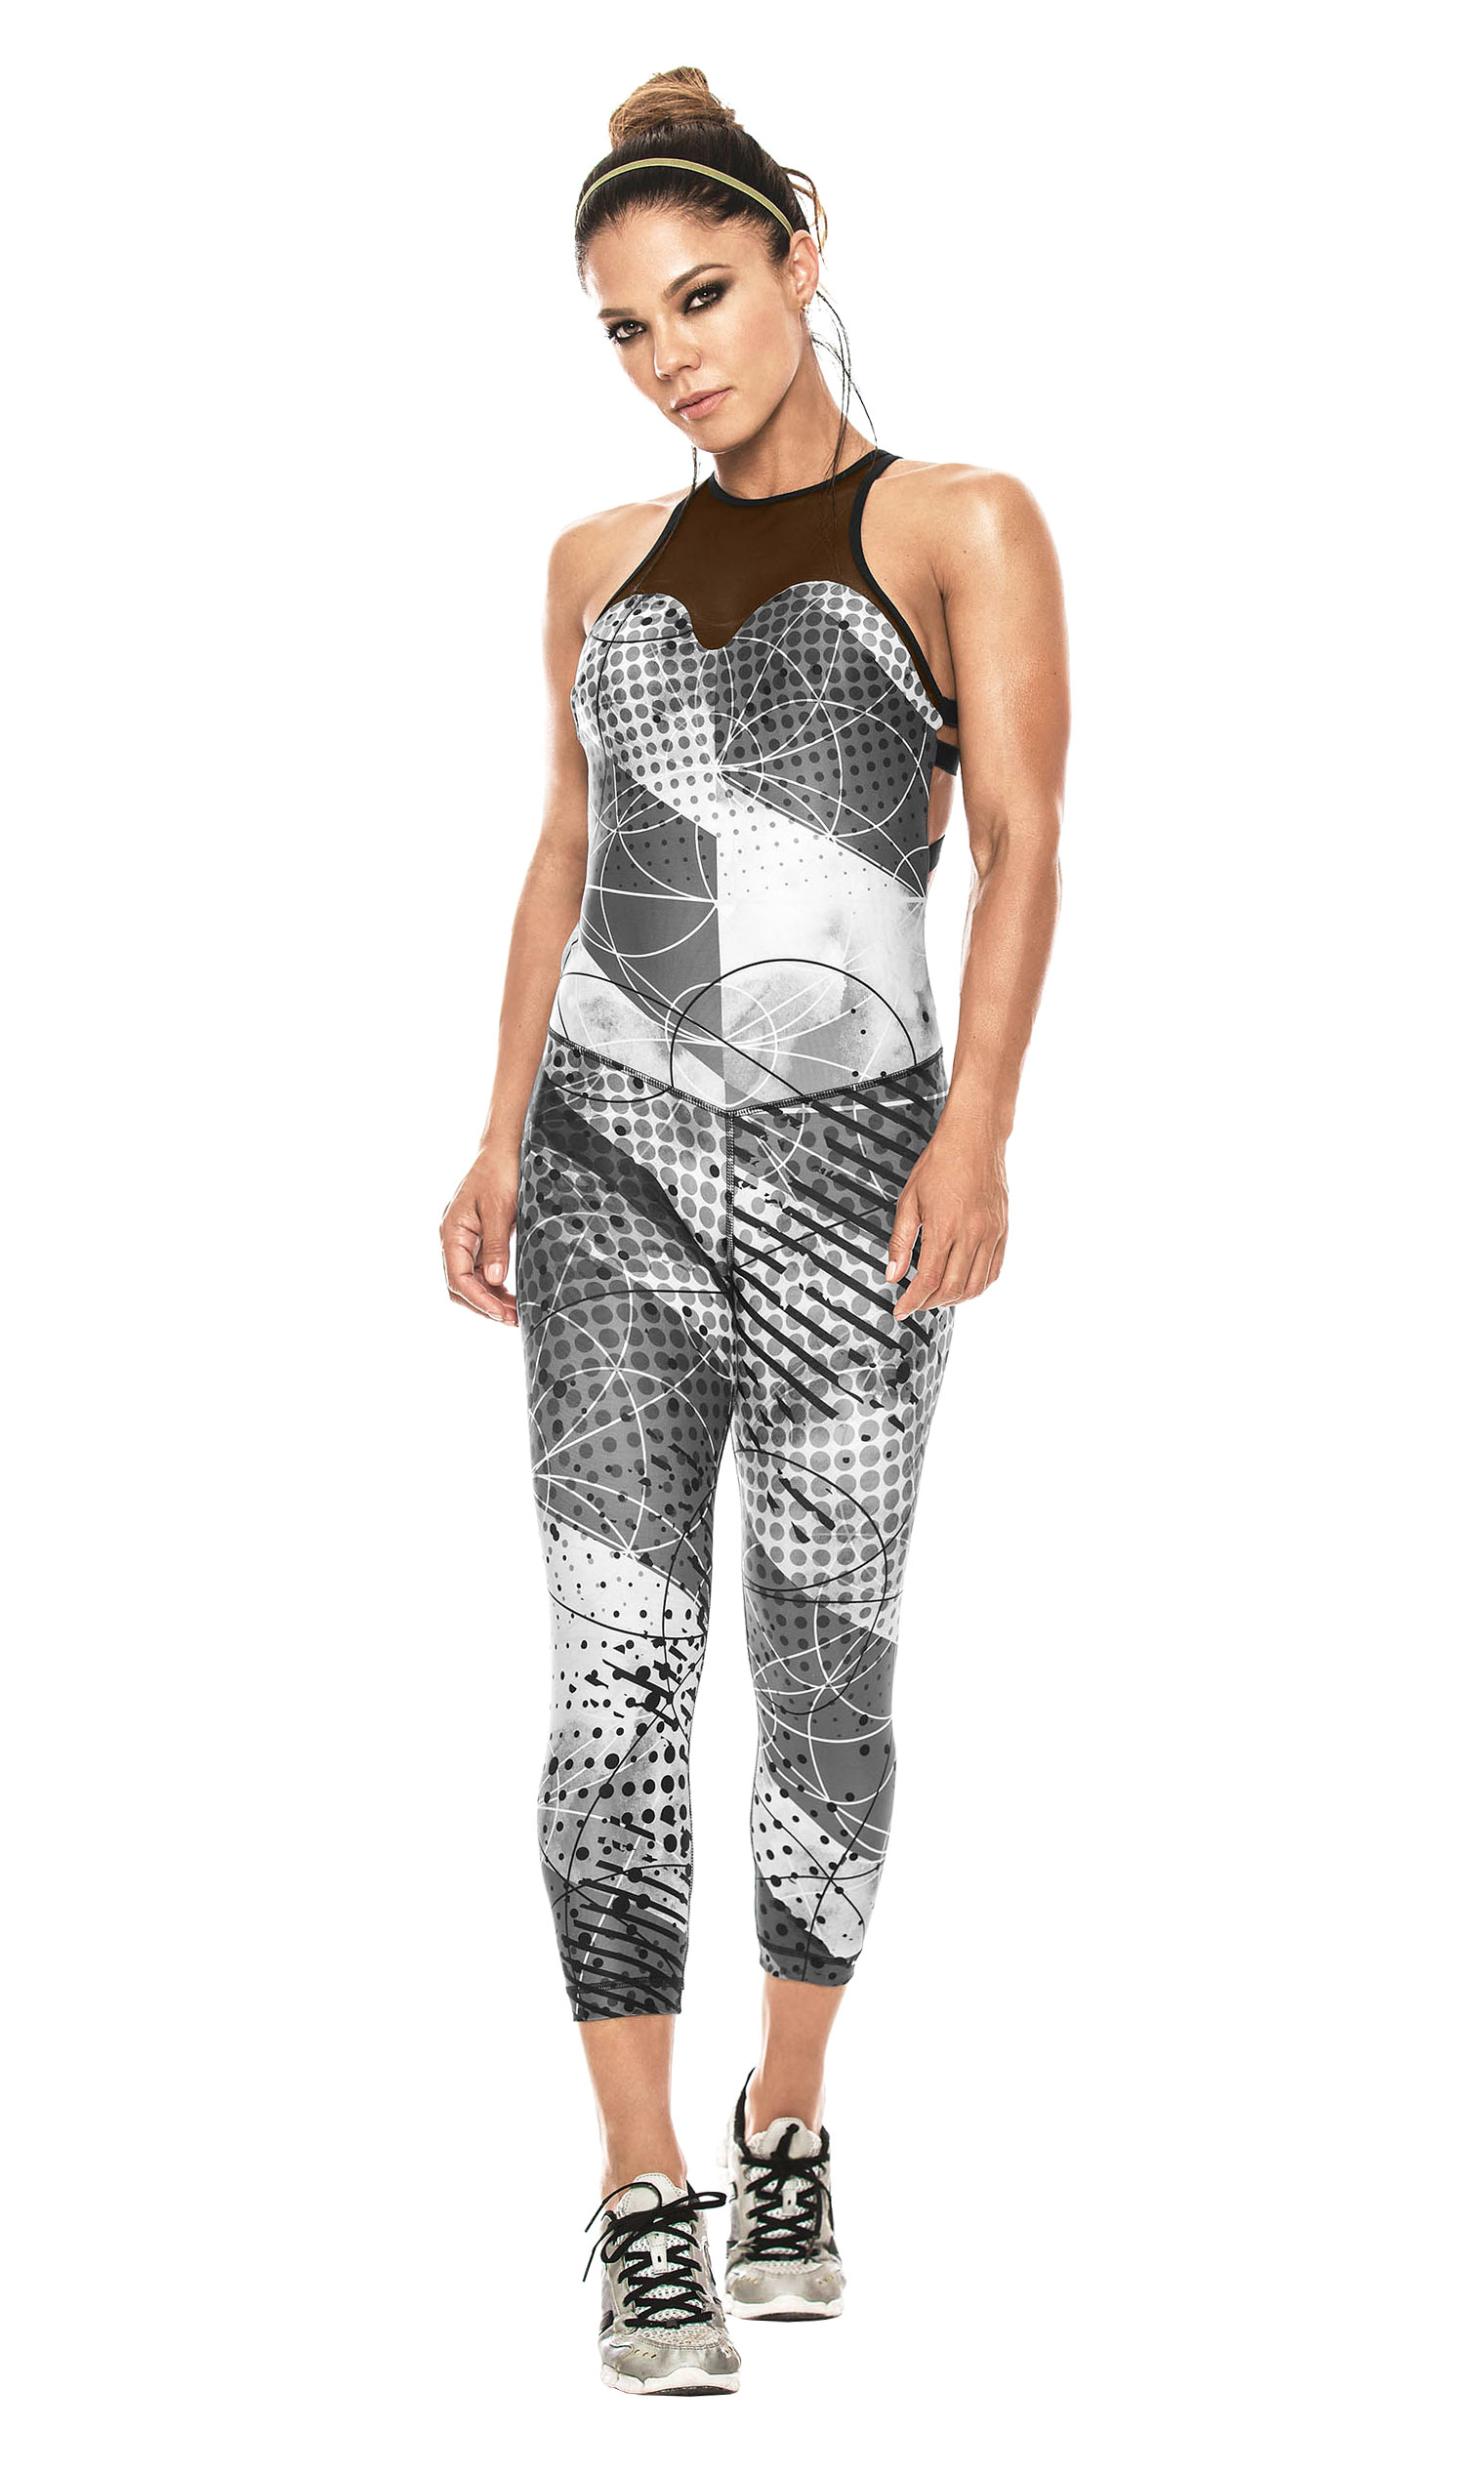 3fe5389ef259 Babalú Fashion Fitness Workout Jumpsuit for Women Gym Sports Jumpsuits  Enterizos Colombianos Deportivos para Mujer Gray One Size